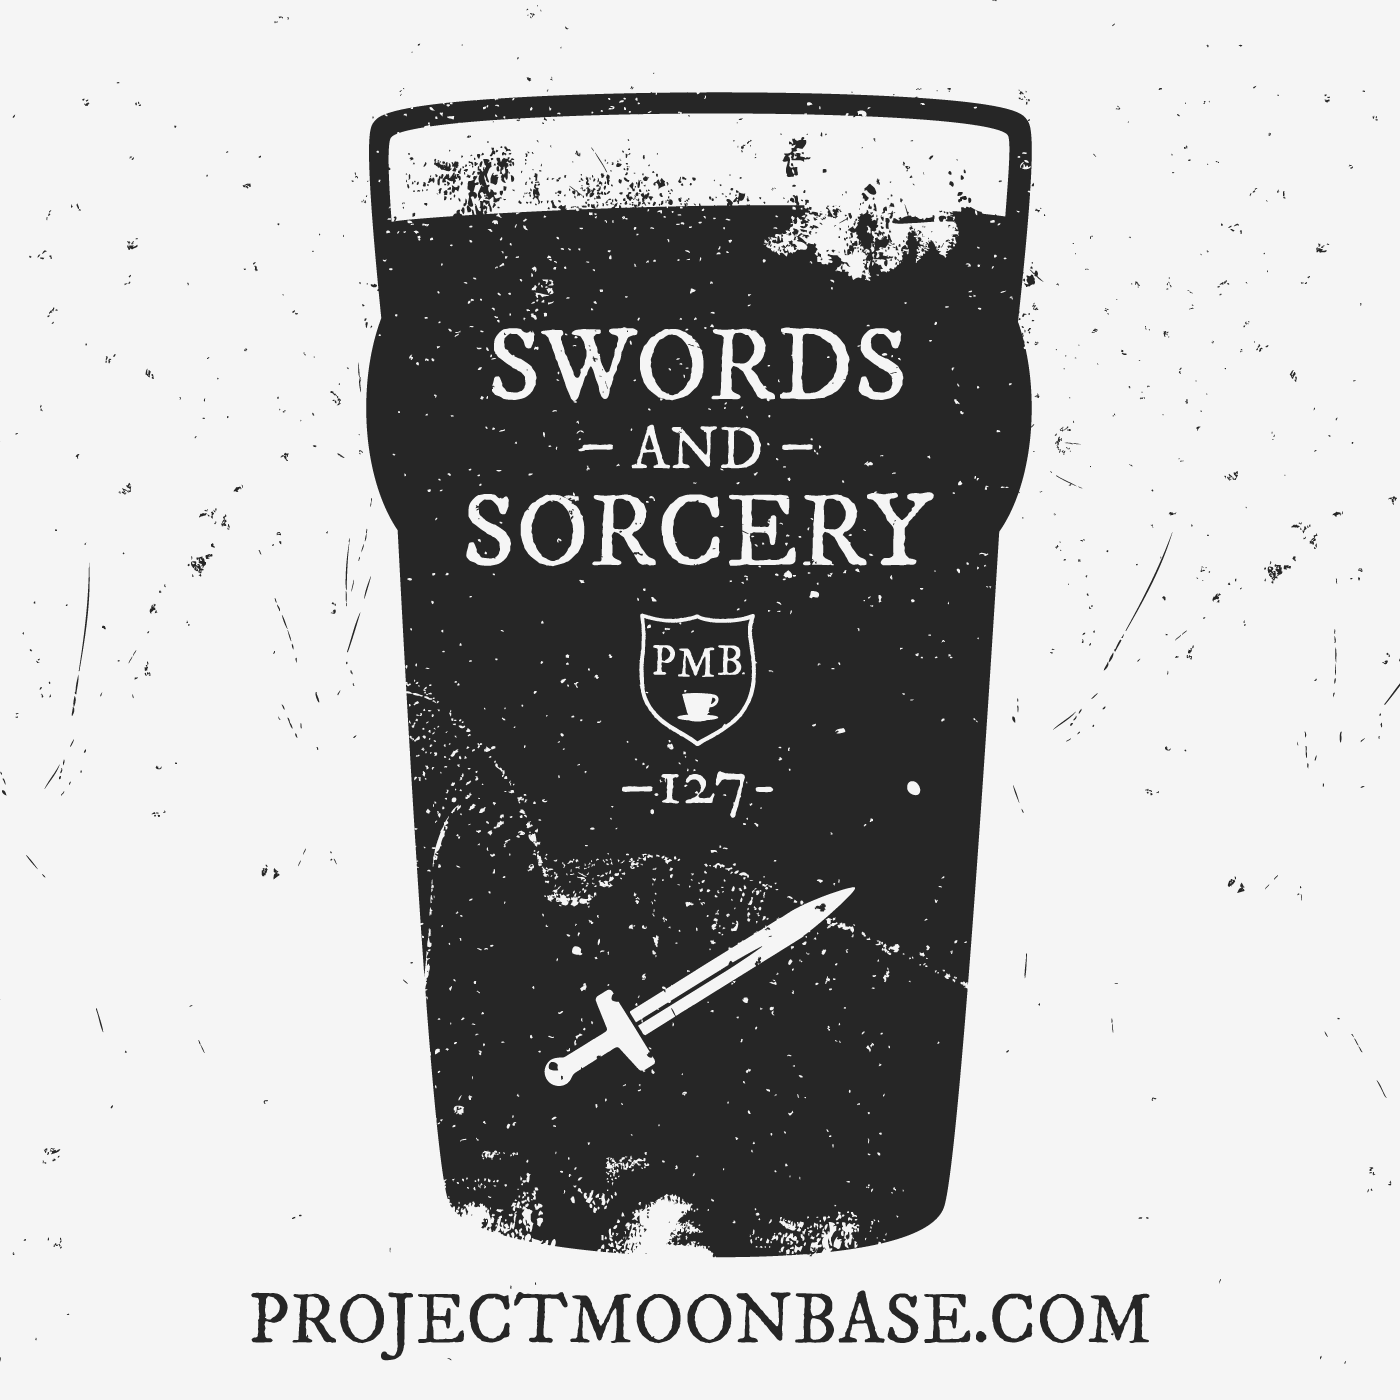 PMB127 Swords and Sorcery